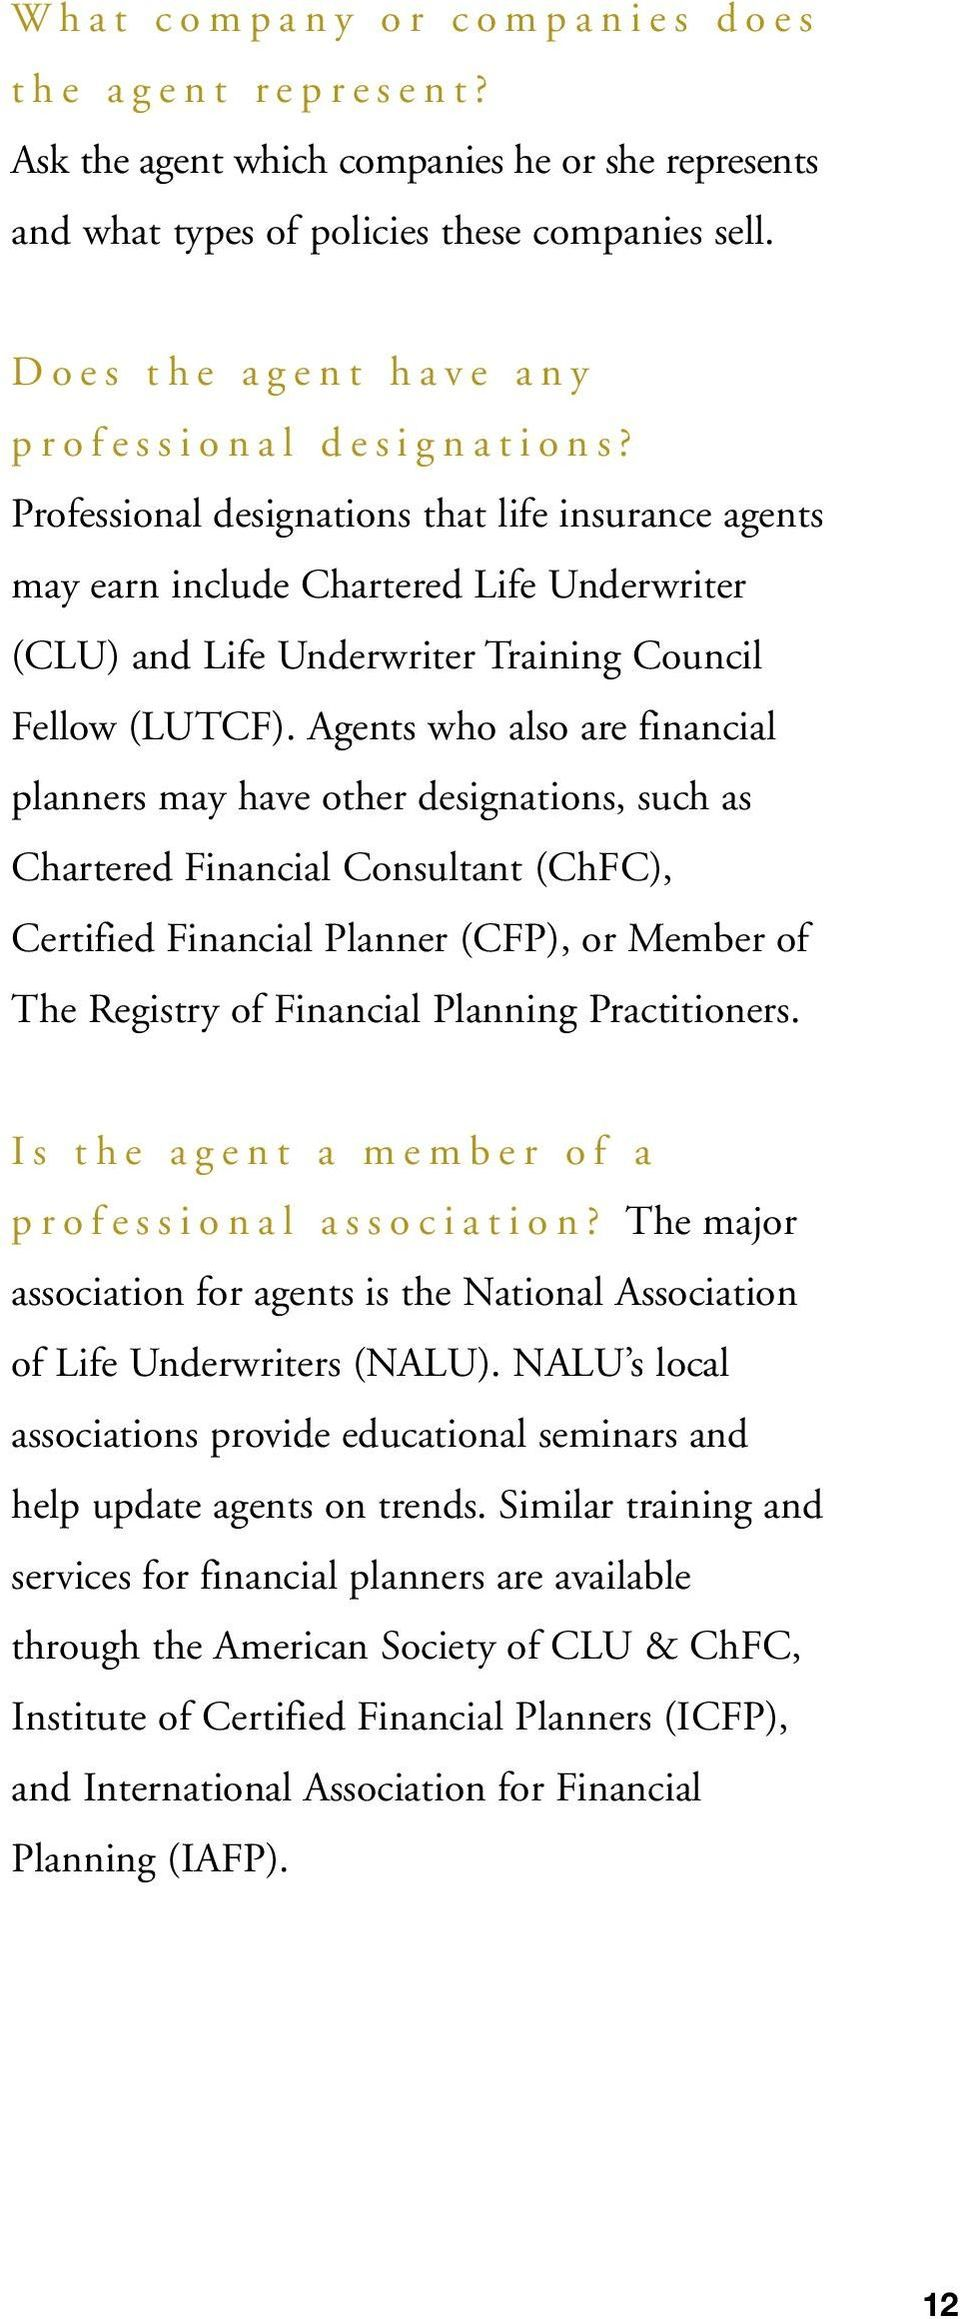 Professional designations that life insurance agents may earn include Chartered Life Underwriter (CLU) and Life Underwriter Training Council Fellow (LUTCF).